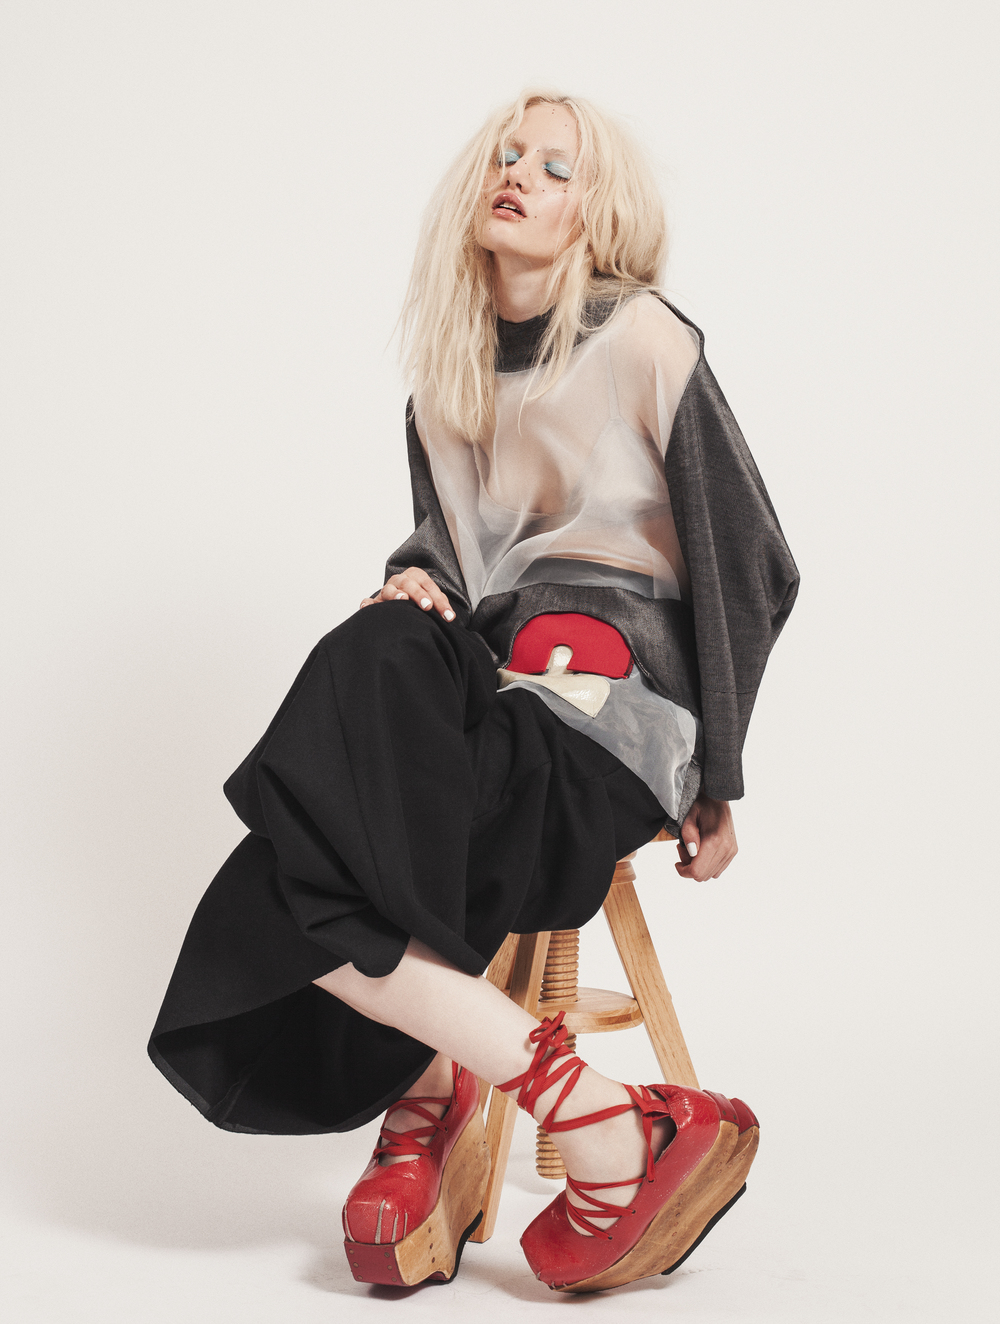 Black Palazzo Trousers by Timur Kim Grey See-Through Top by  Mai Gidah  Shoes by Natacha Marro